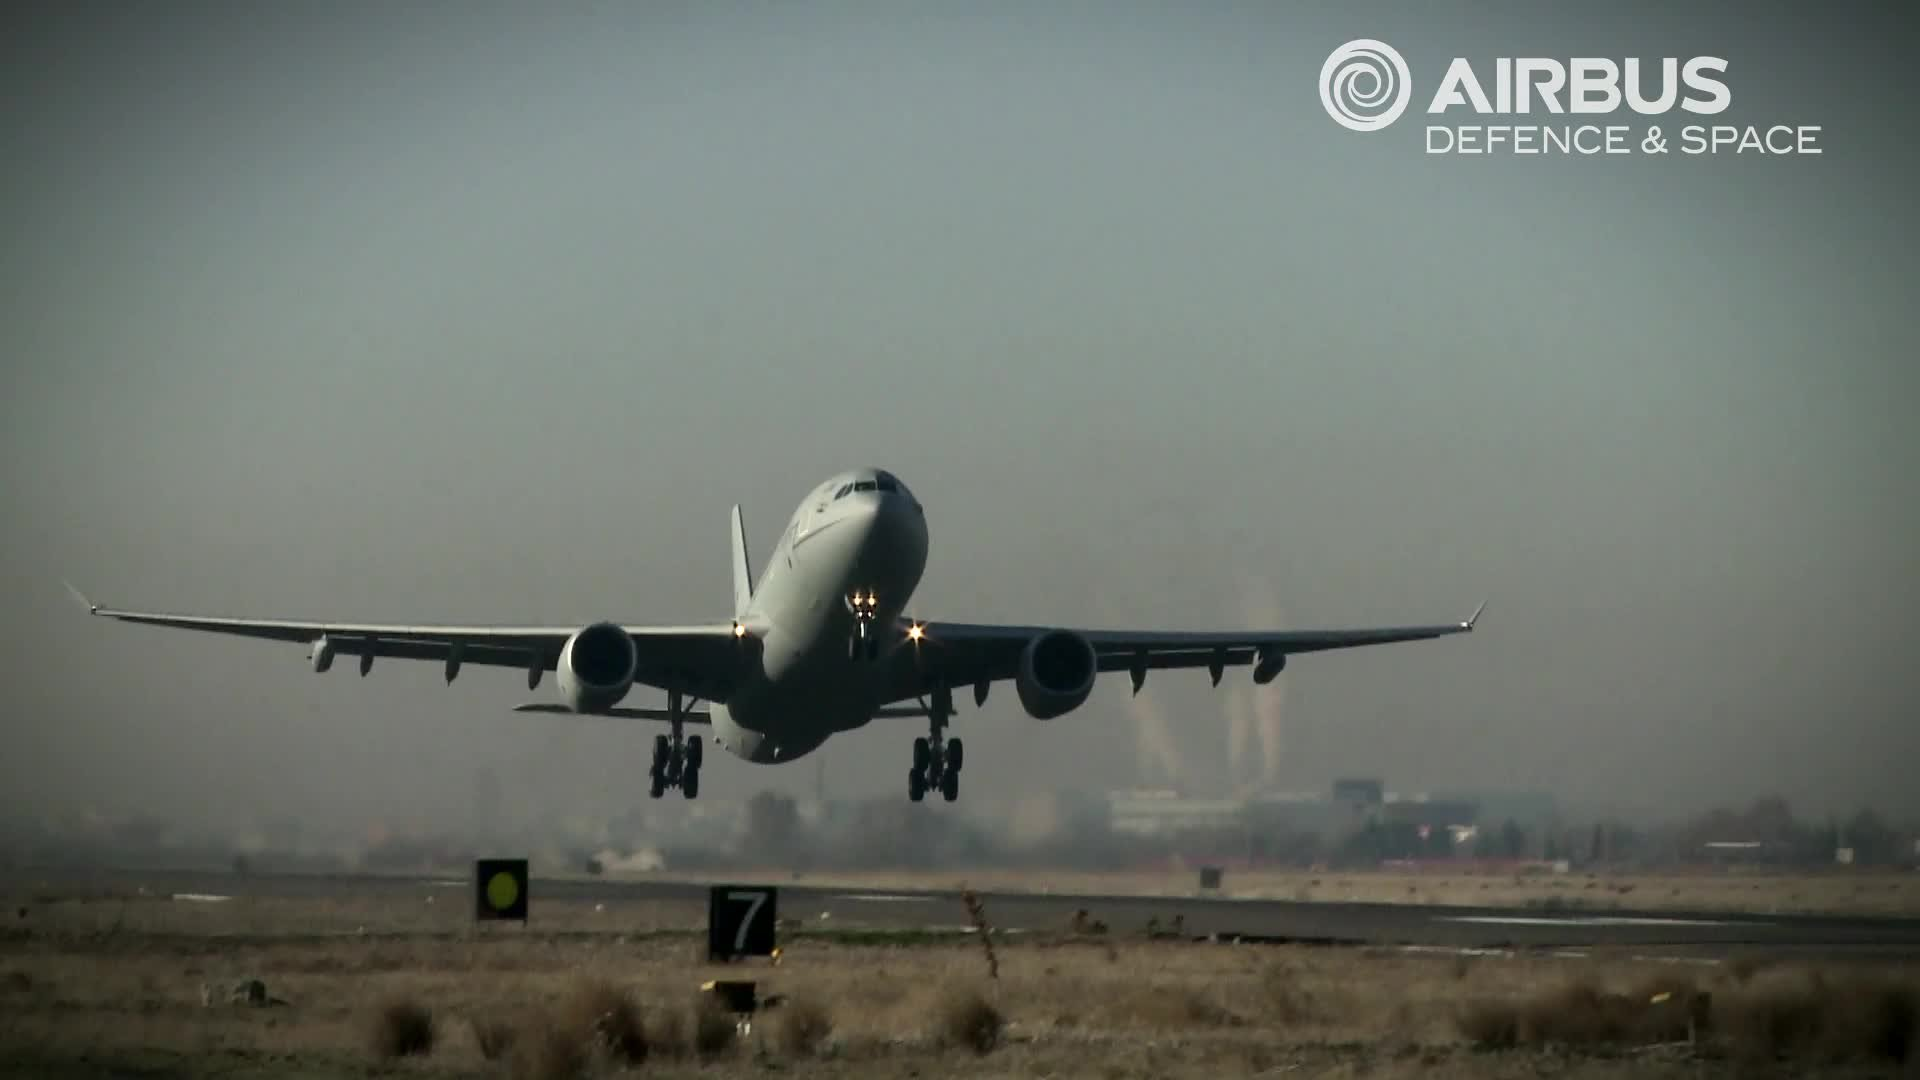 A330 MRTT The Most Capable Tanker Transport